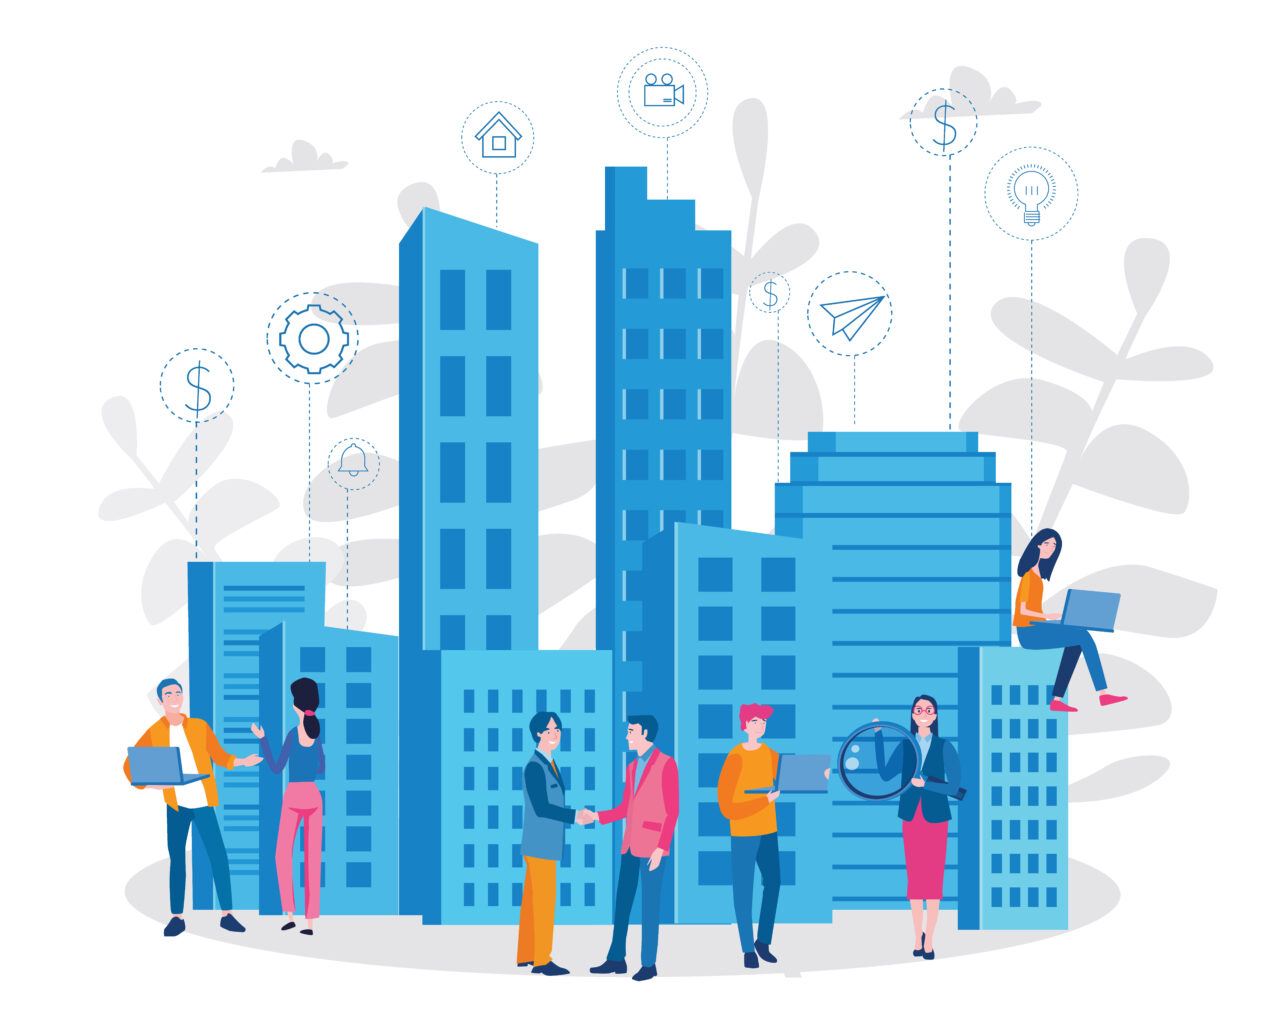 An illustration shows people in front of buildings who talk and work.